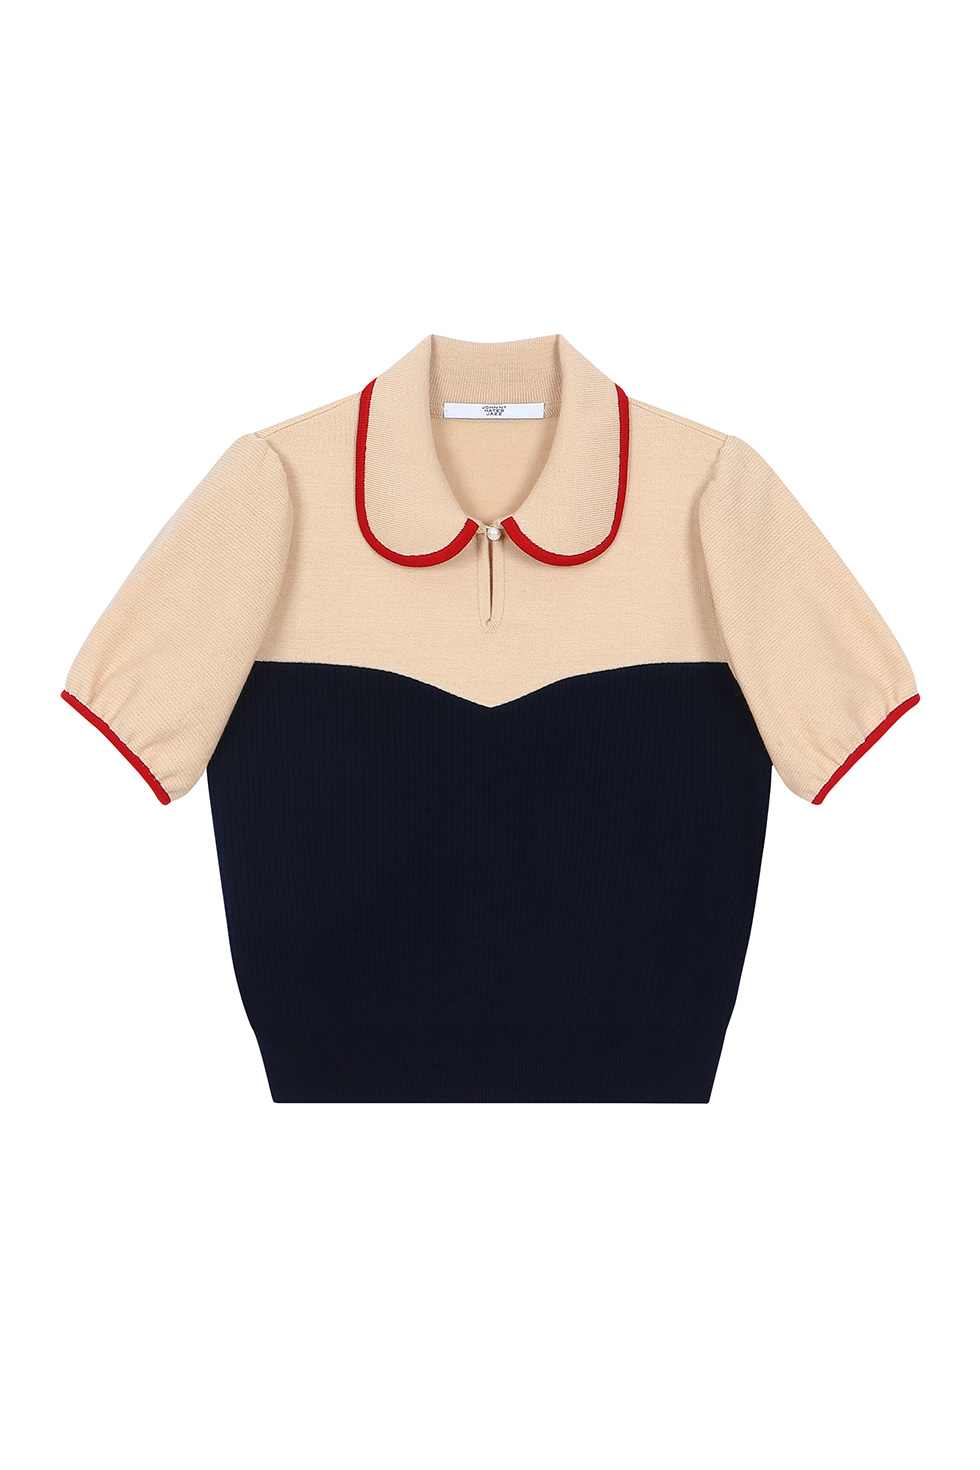 PUFF SLEEVES KNIT TOP - NAVY